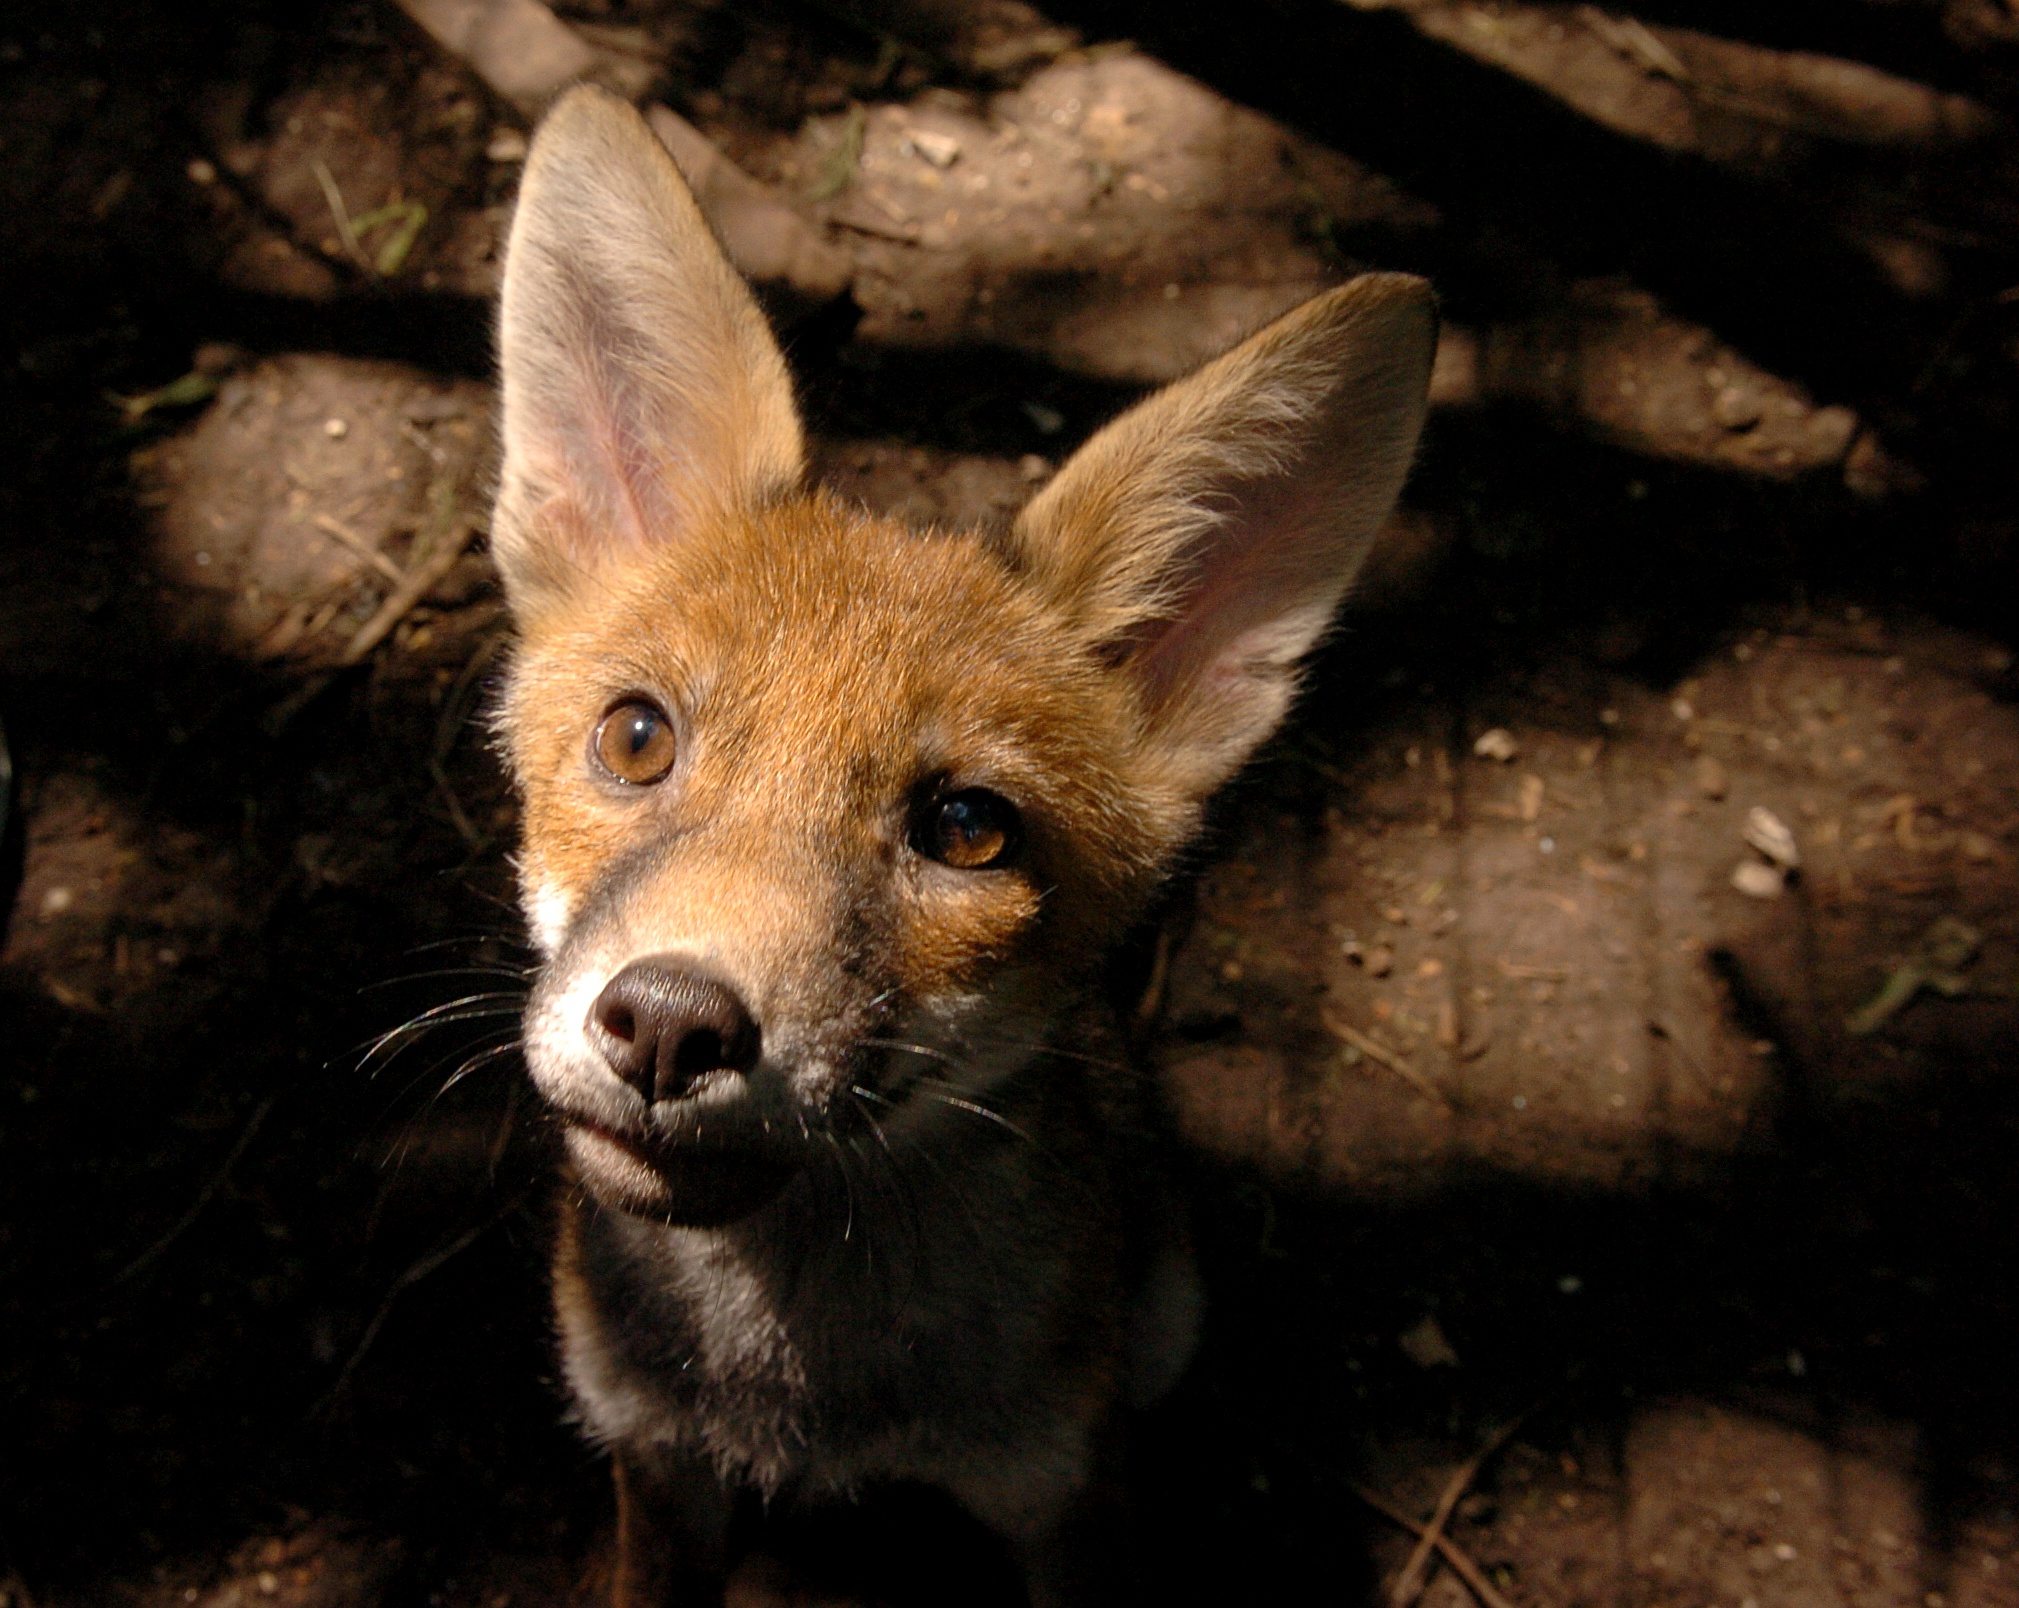 Talking Point: Should the urban fox population be kept under control?